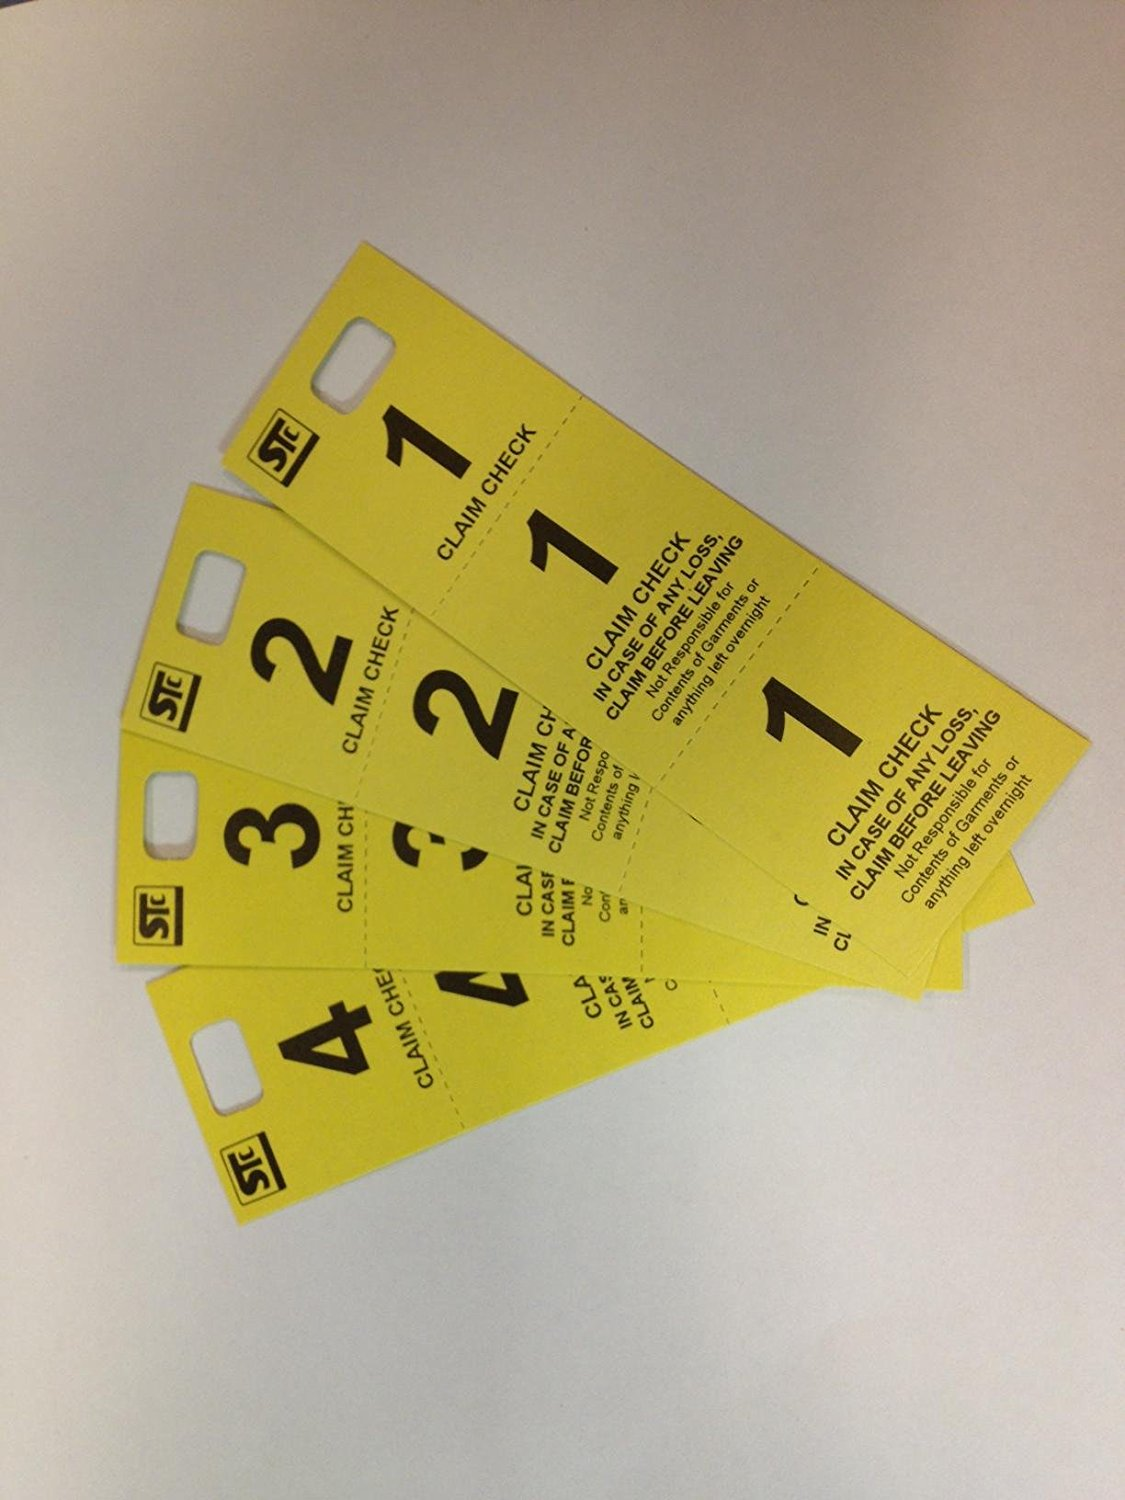 Stanton Trading Coat Check Tag, Triplicate Coat Check Claim Tickets (Yellow)